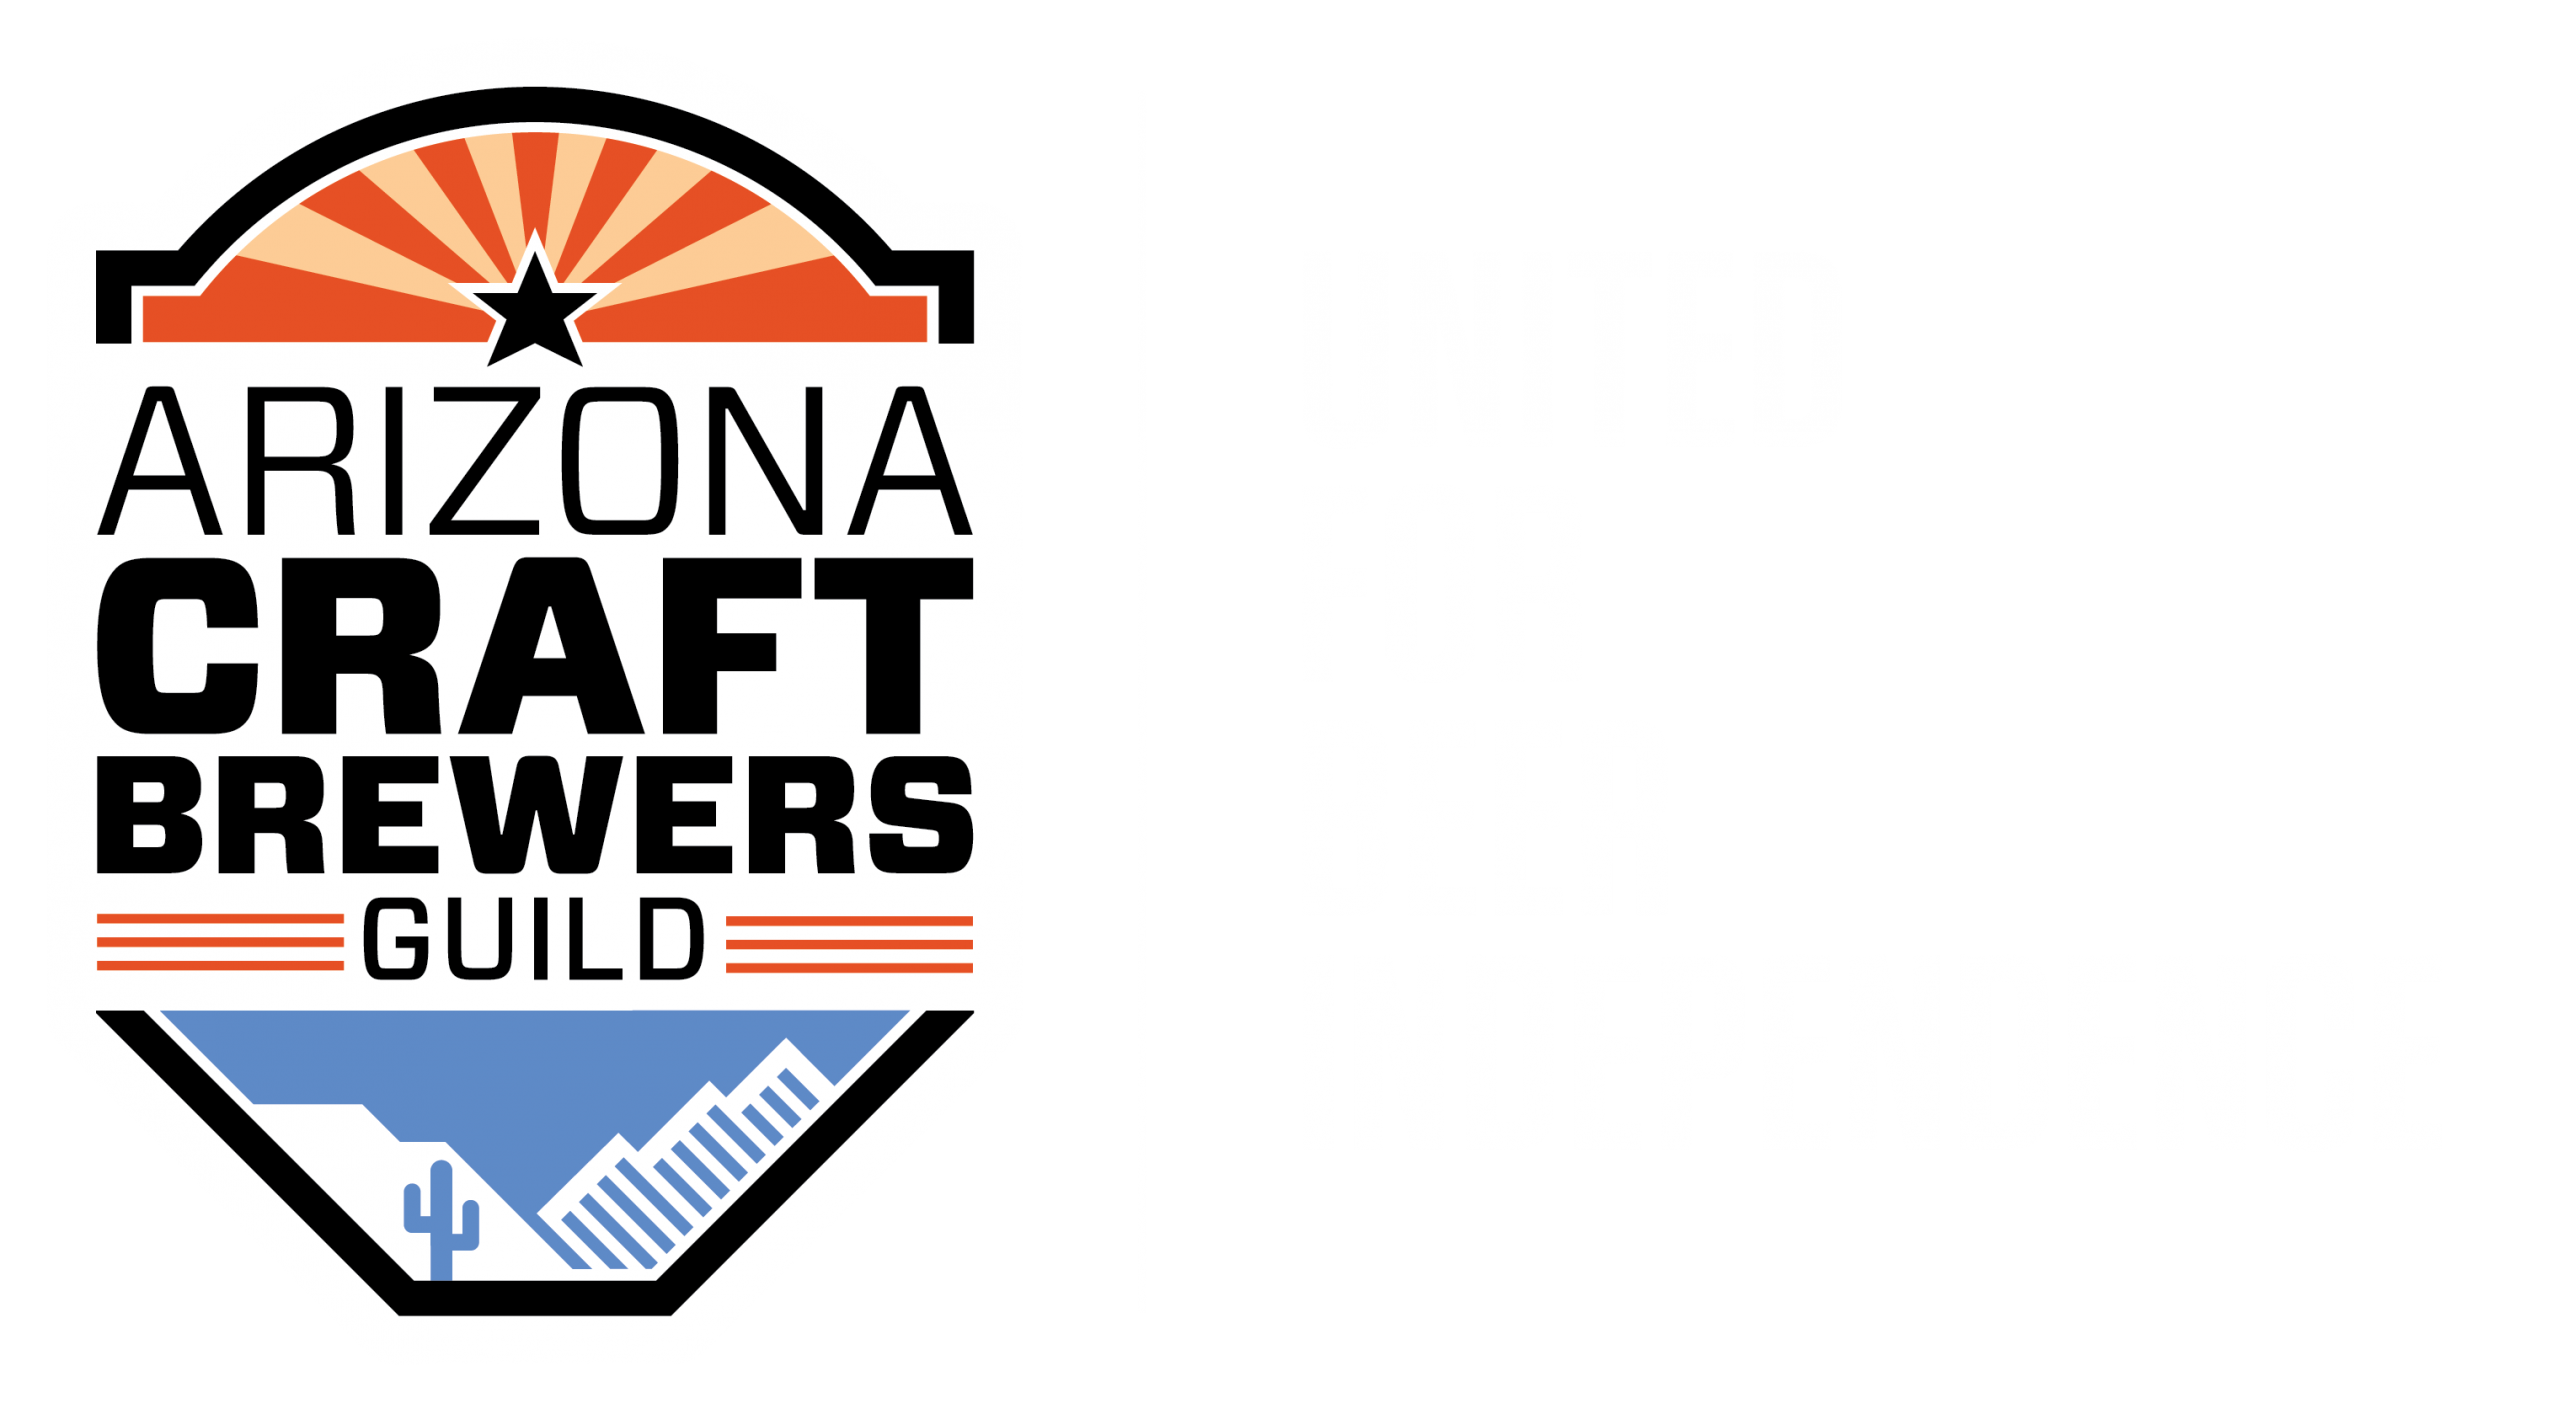 Black Horse Brewery | Arizona Craft Brewers Guild